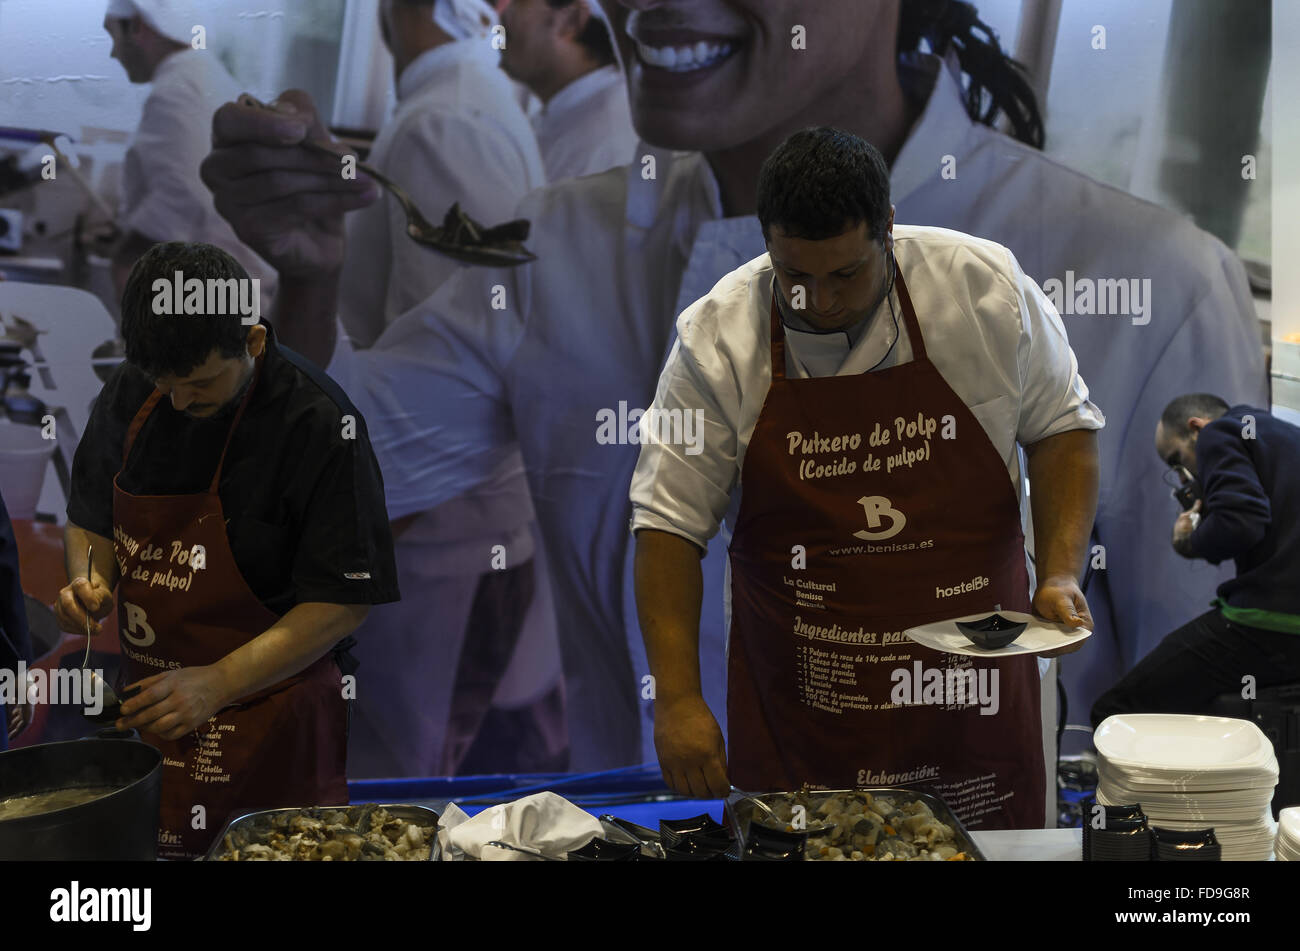 A cook view in Fitur tourism fair, Madrid, Spain - Stock Image